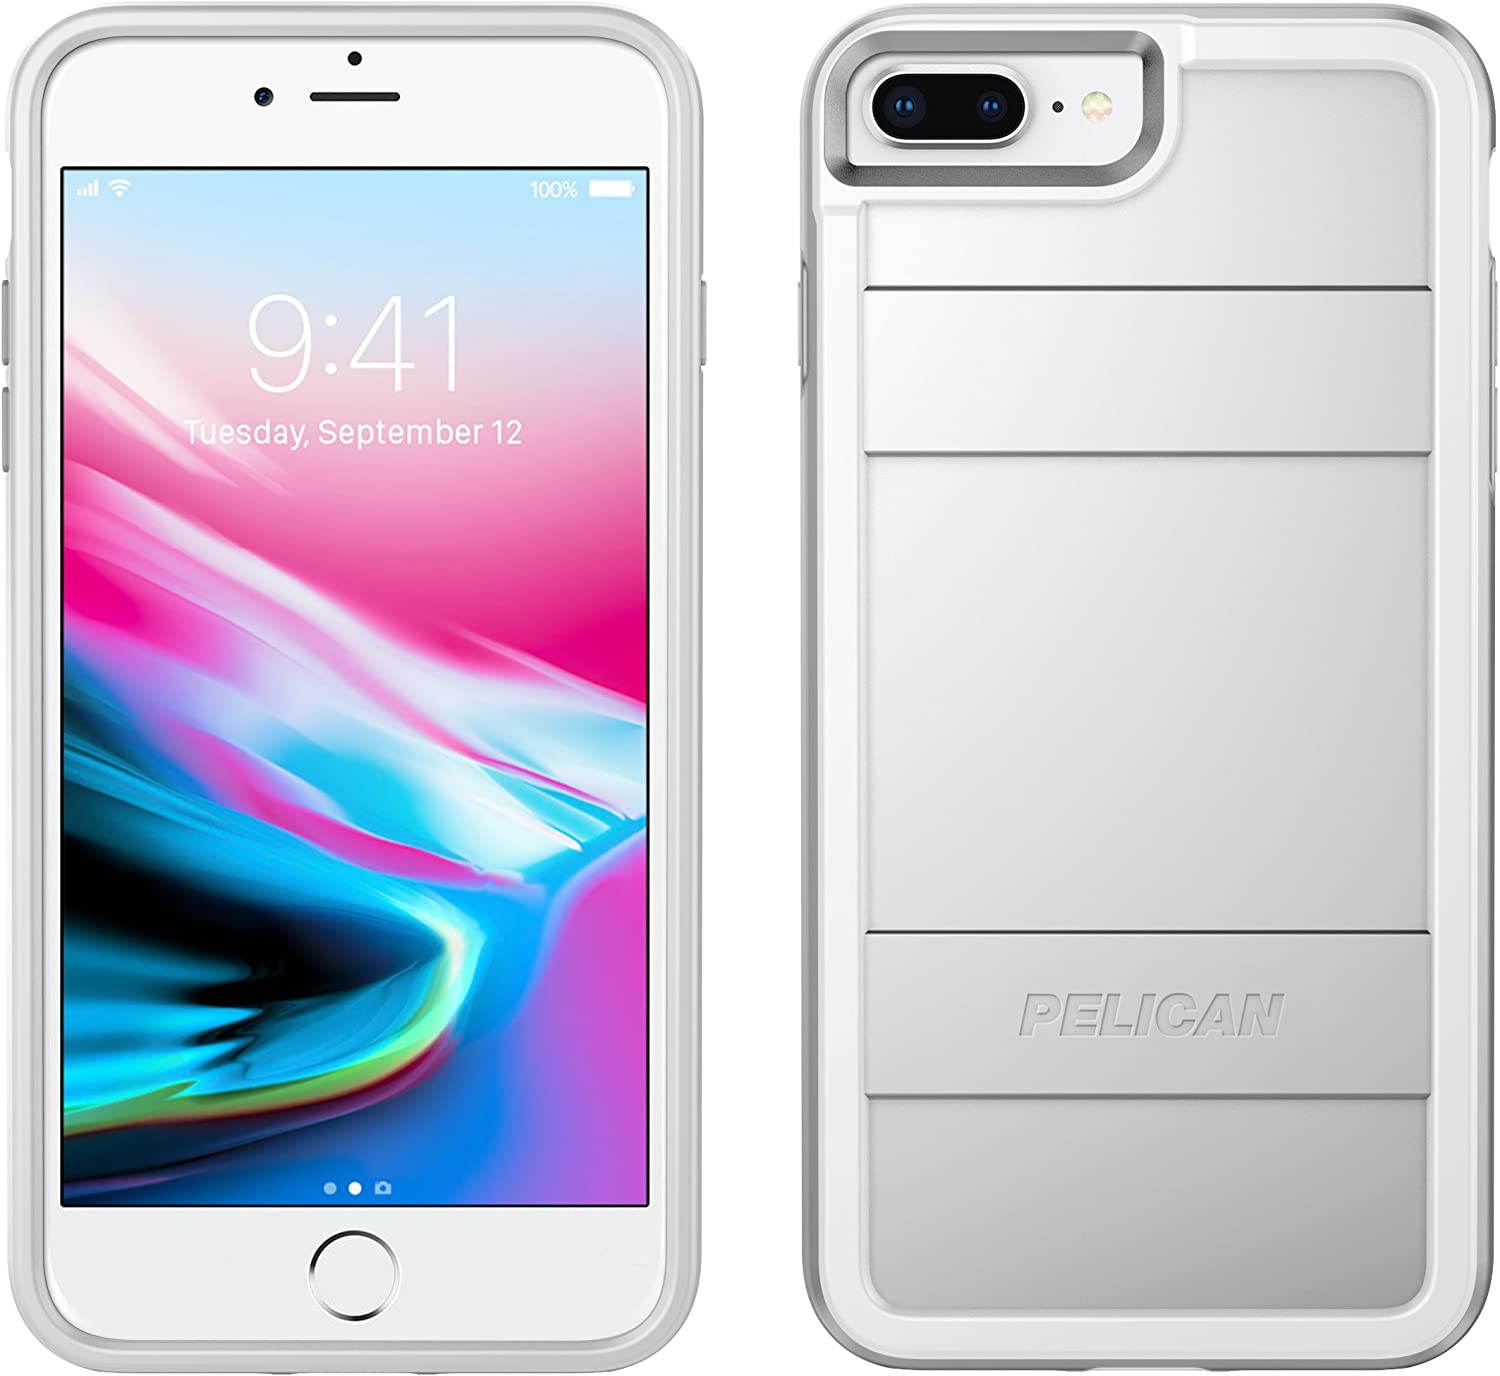 Pelican Protector iPhone Case - fits iPhone 6/6s/7 Plus - Compatible with iPhone 8 Plus (Metallic Silver)